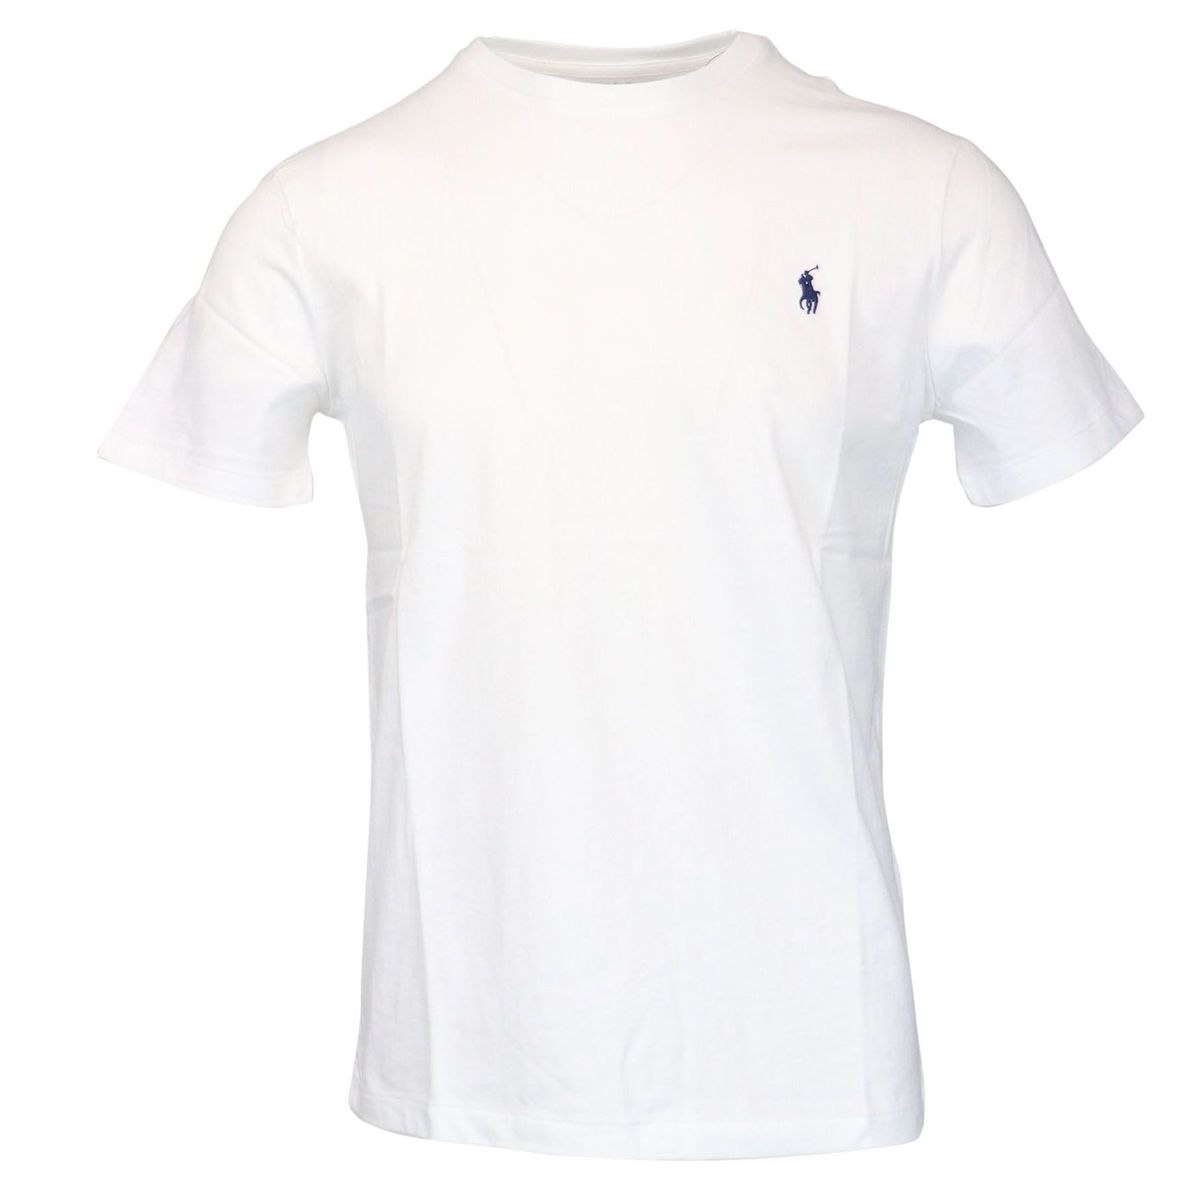 Cotton T-shirt with contrasting logo embroidery White Polo Ralph Lauren